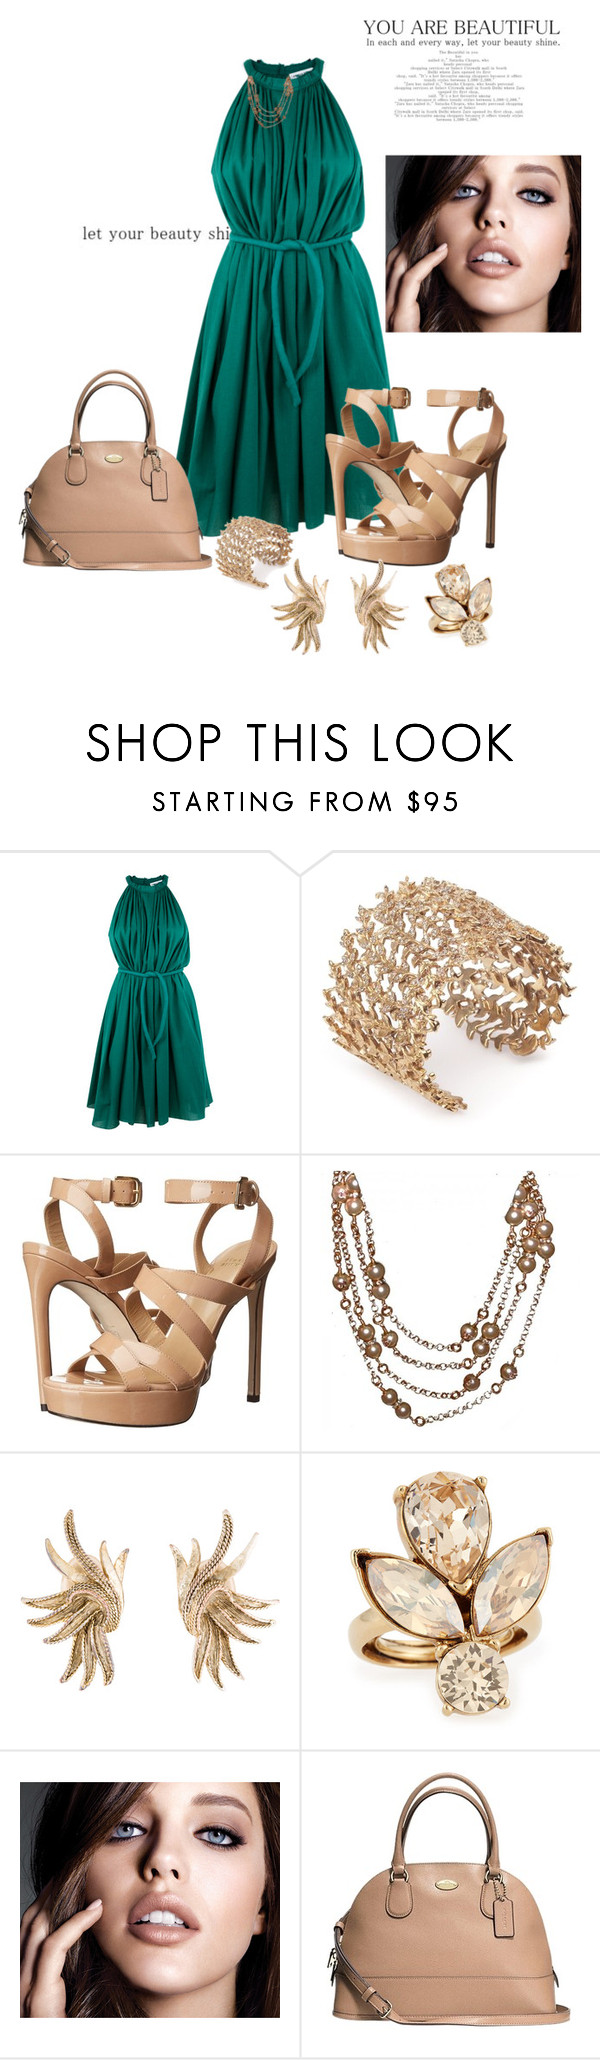 """""""Untitled #2540"""" by janicemckay ❤ liked on Polyvore featuring Apiece Apart, Joanna Laura Constantine, Stuart Weitzman, Chanel, Oscar de la Renta, Maybelline and Coach"""